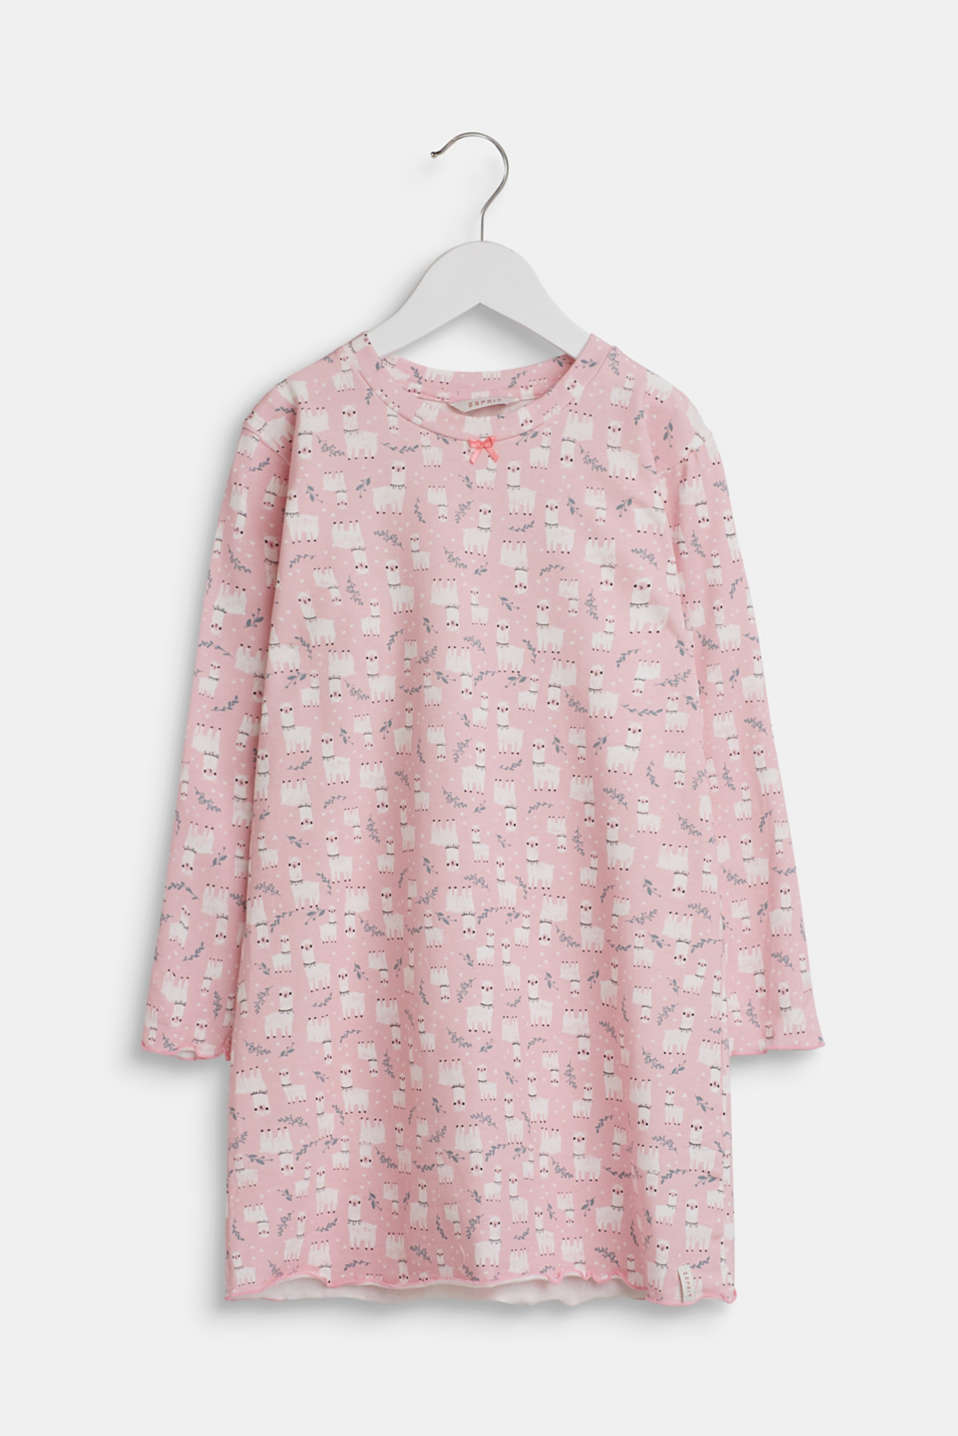 Esprit - Llama motif nightshirt made of stretch cotton